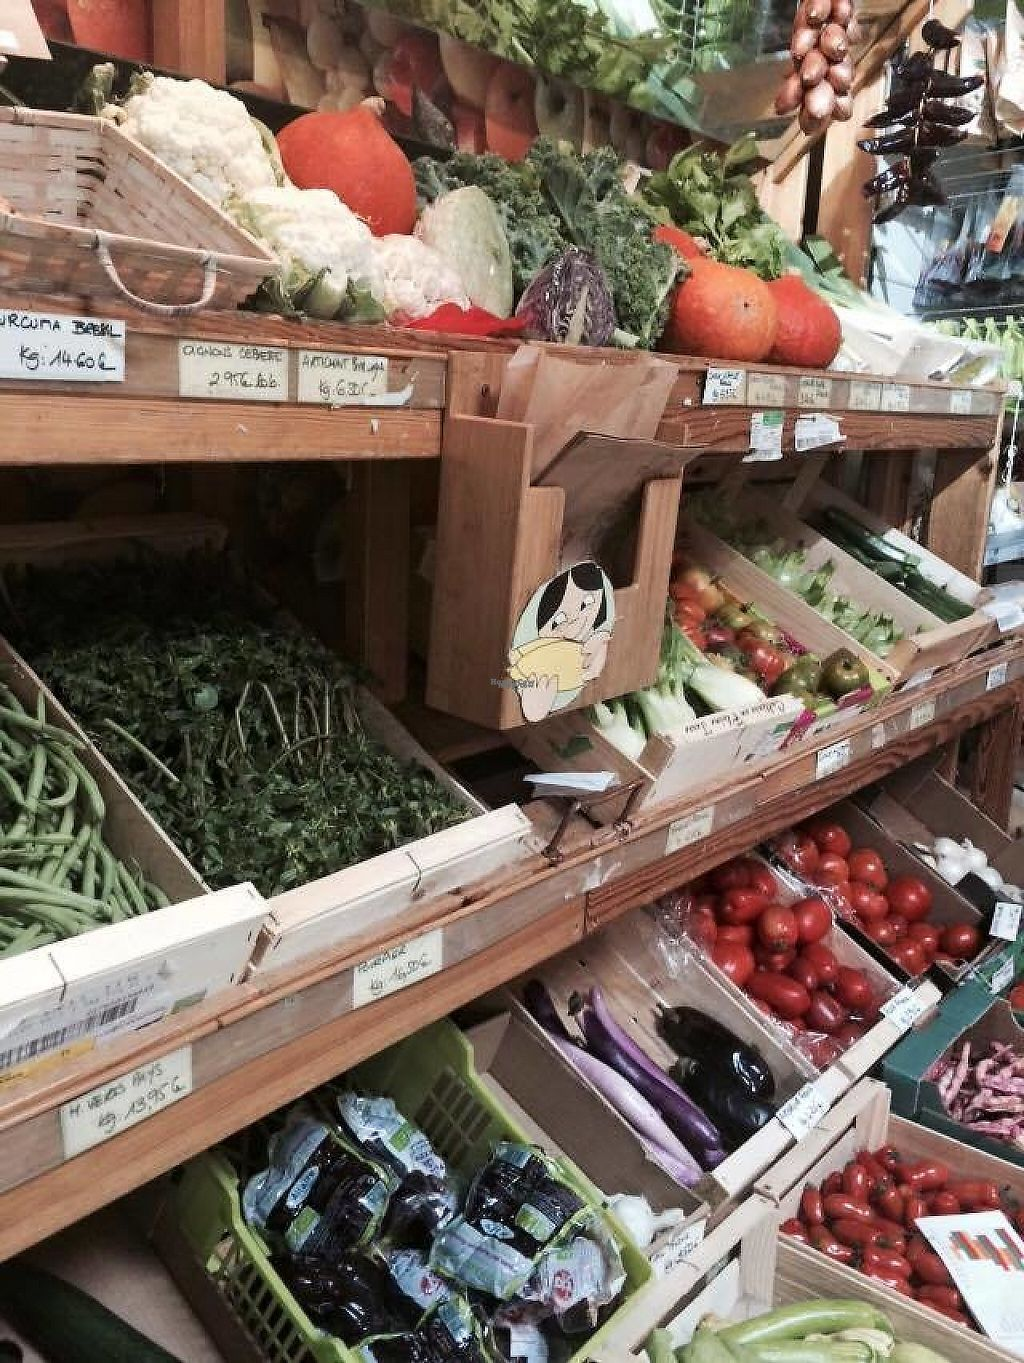 """Photo of Le Panier Vert  by <a href=""""/members/profile/Logge"""">Logge</a> <br/>Fresh produce <br/> December 14, 2016  - <a href='/contact/abuse/image/48174/201075'>Report</a>"""